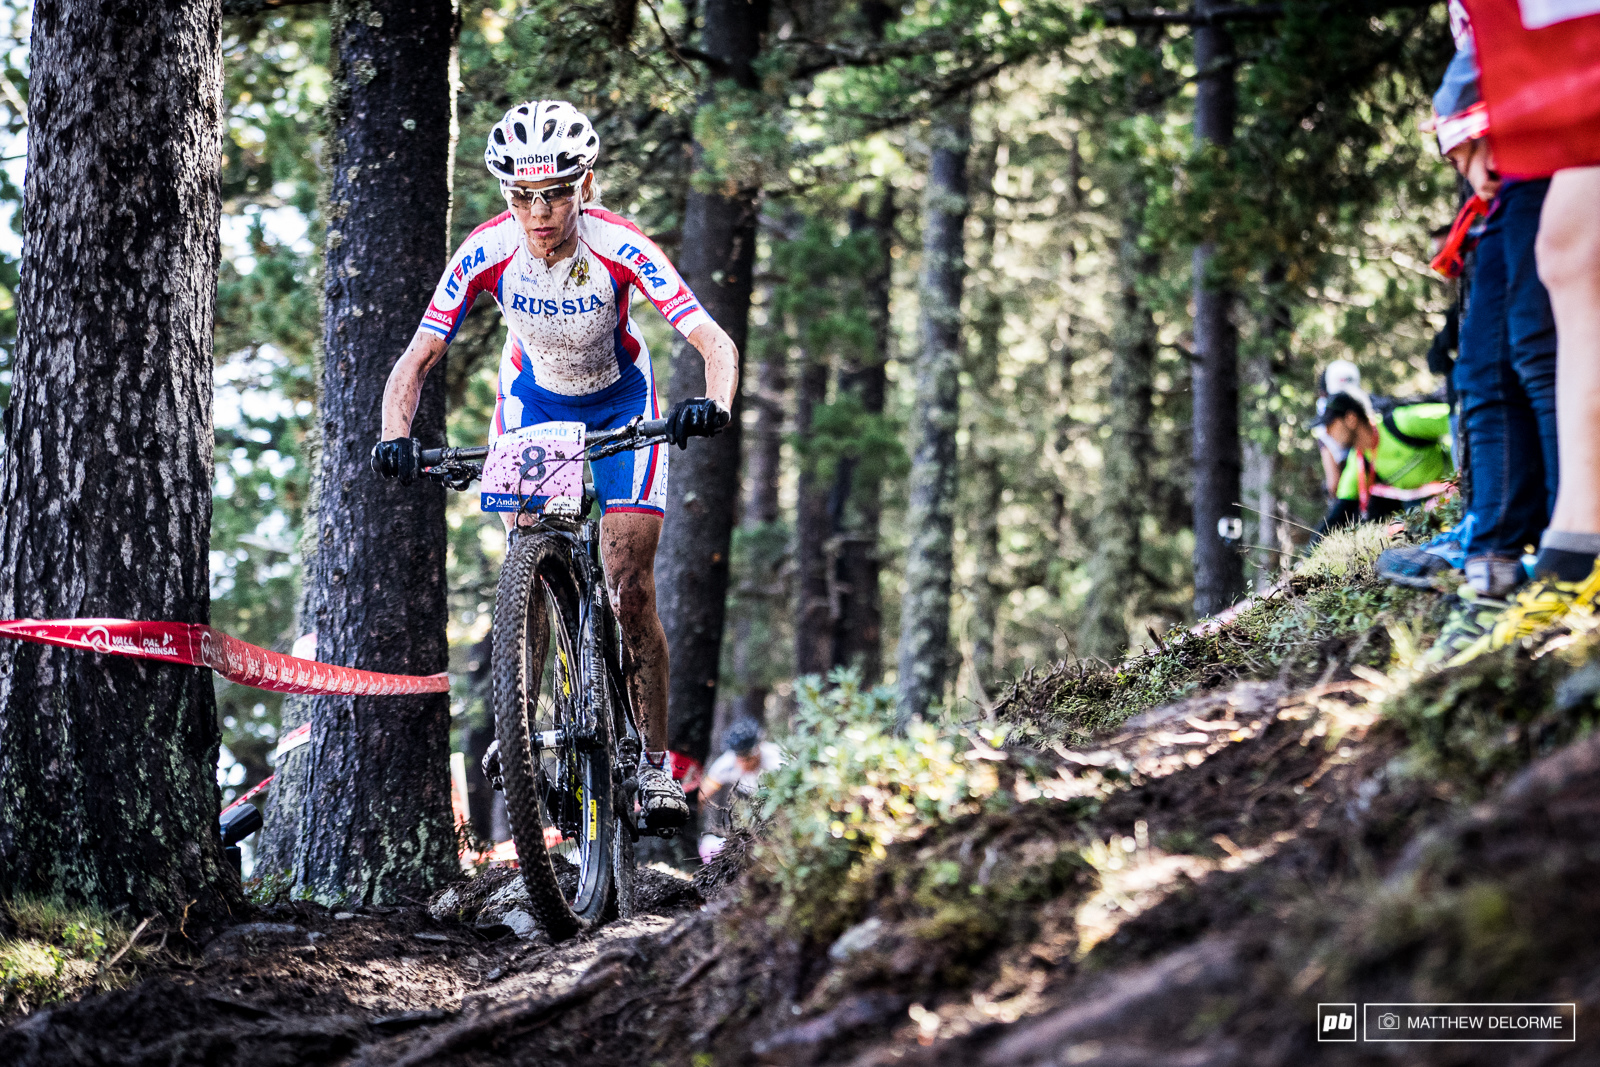 Irina Kalentyeva steered clear of traffic for the majority of the race and rode strong to finish second.